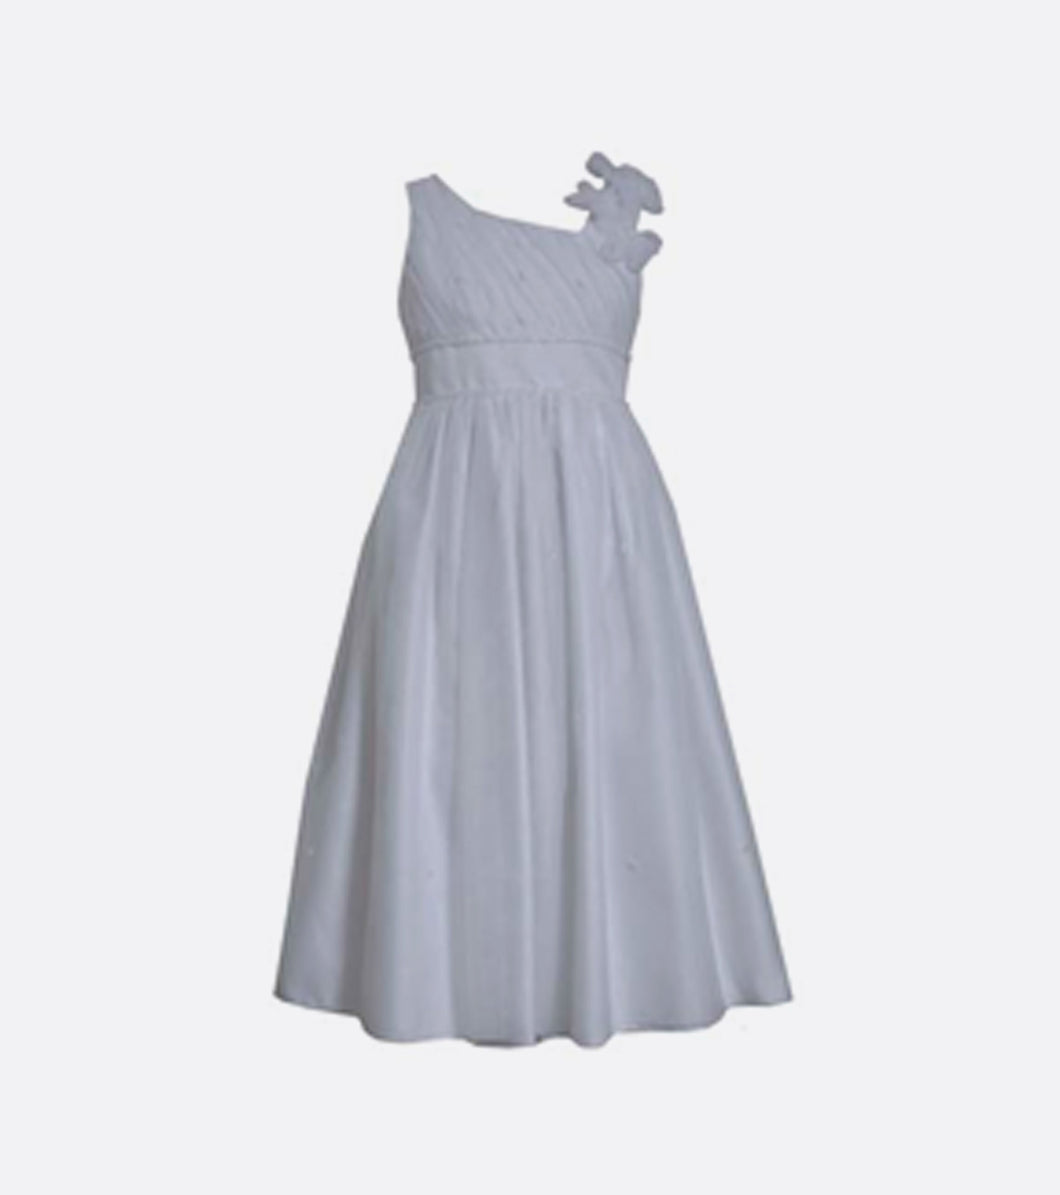 Bonnie Jean First Communion Dress Sale